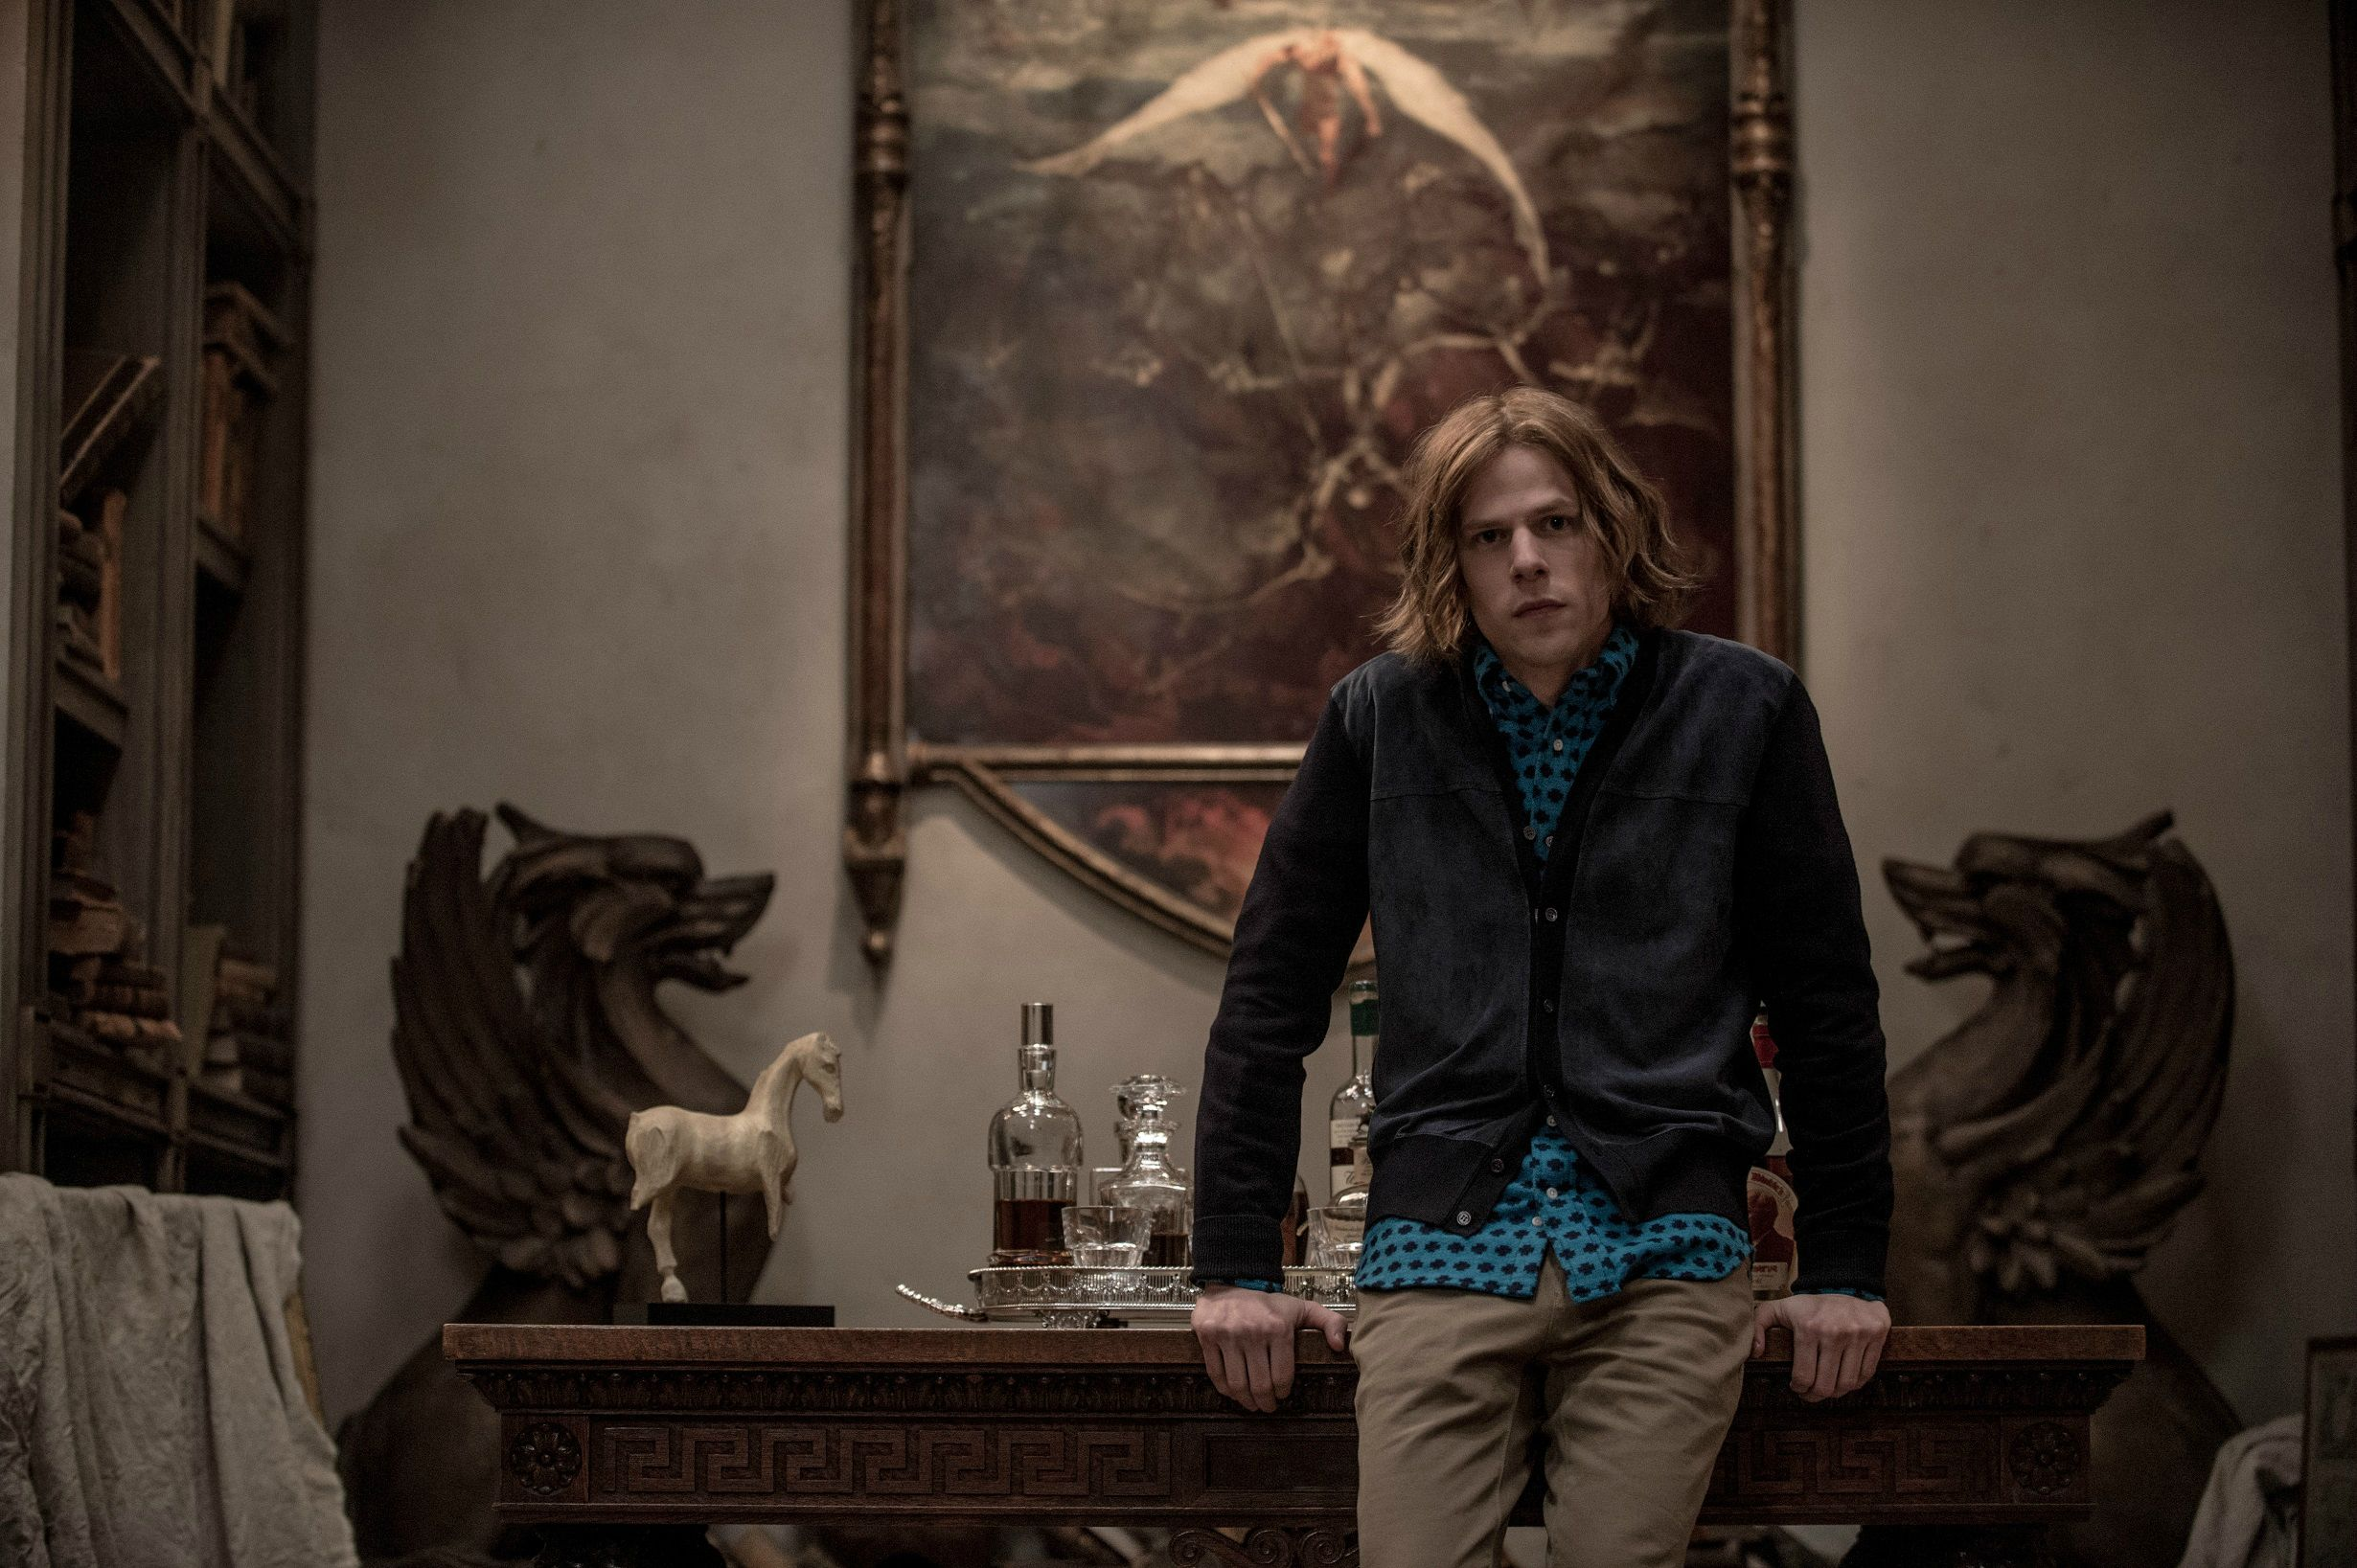 Jesse Eisenberg confirms Lex Luthor will return for Justice League